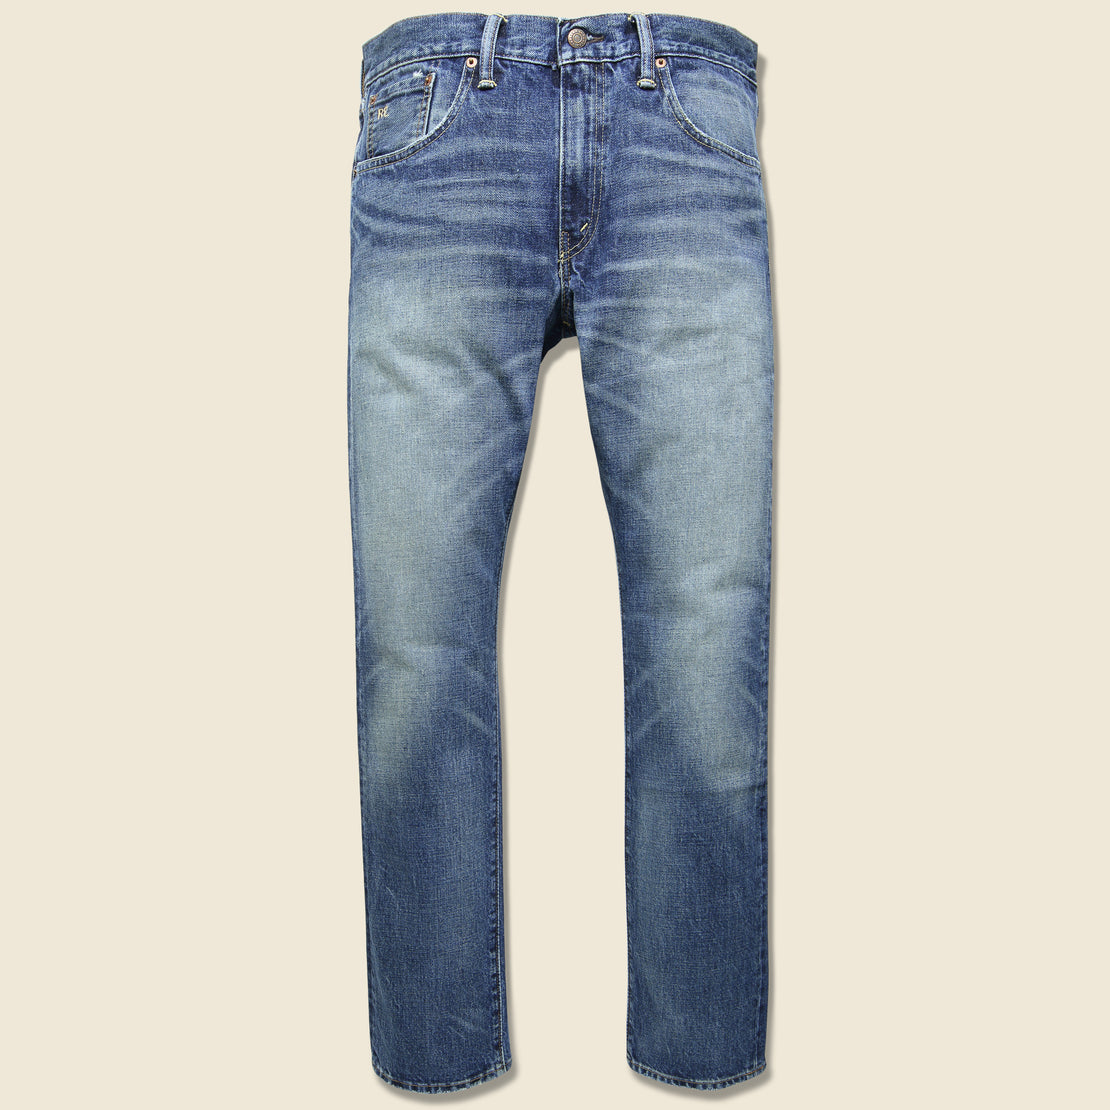 RRL Slim Fit Jean - Gibson Wash